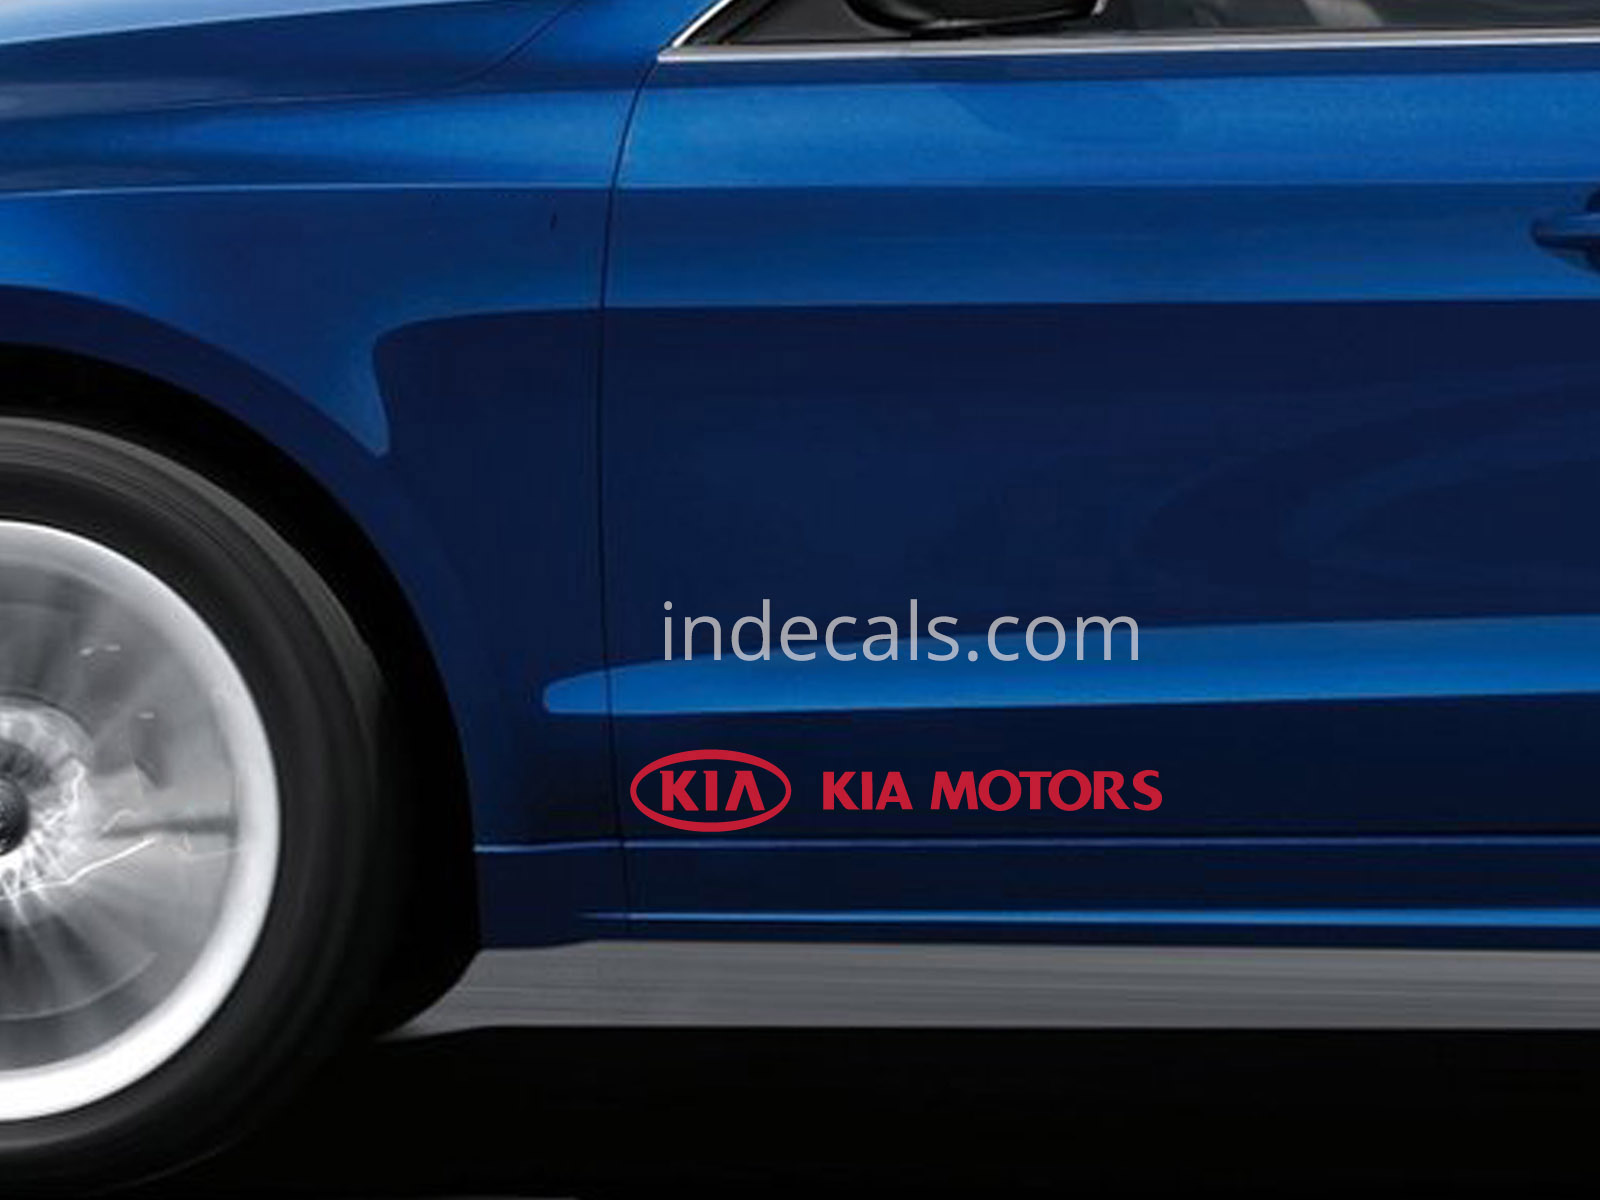 2 x Kia Stickers for Doors Large - Red